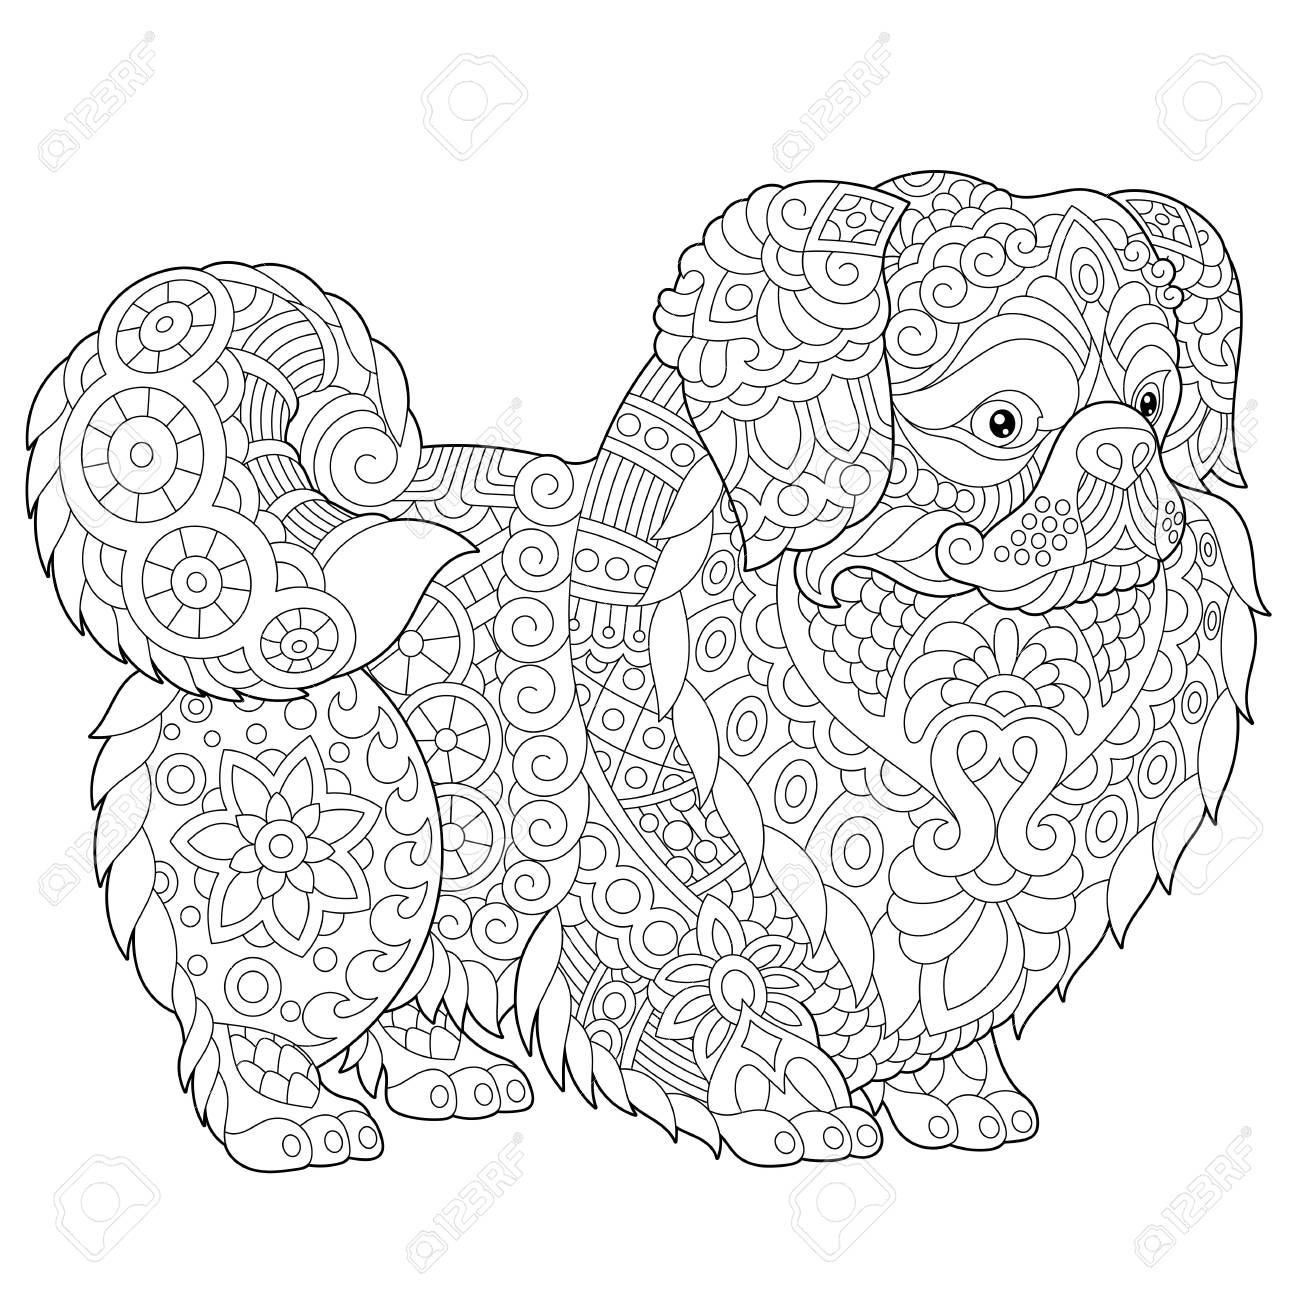 Coloring Pages. Pekingese Or Japanese Chin Dog Breed. Adult Coloring ...